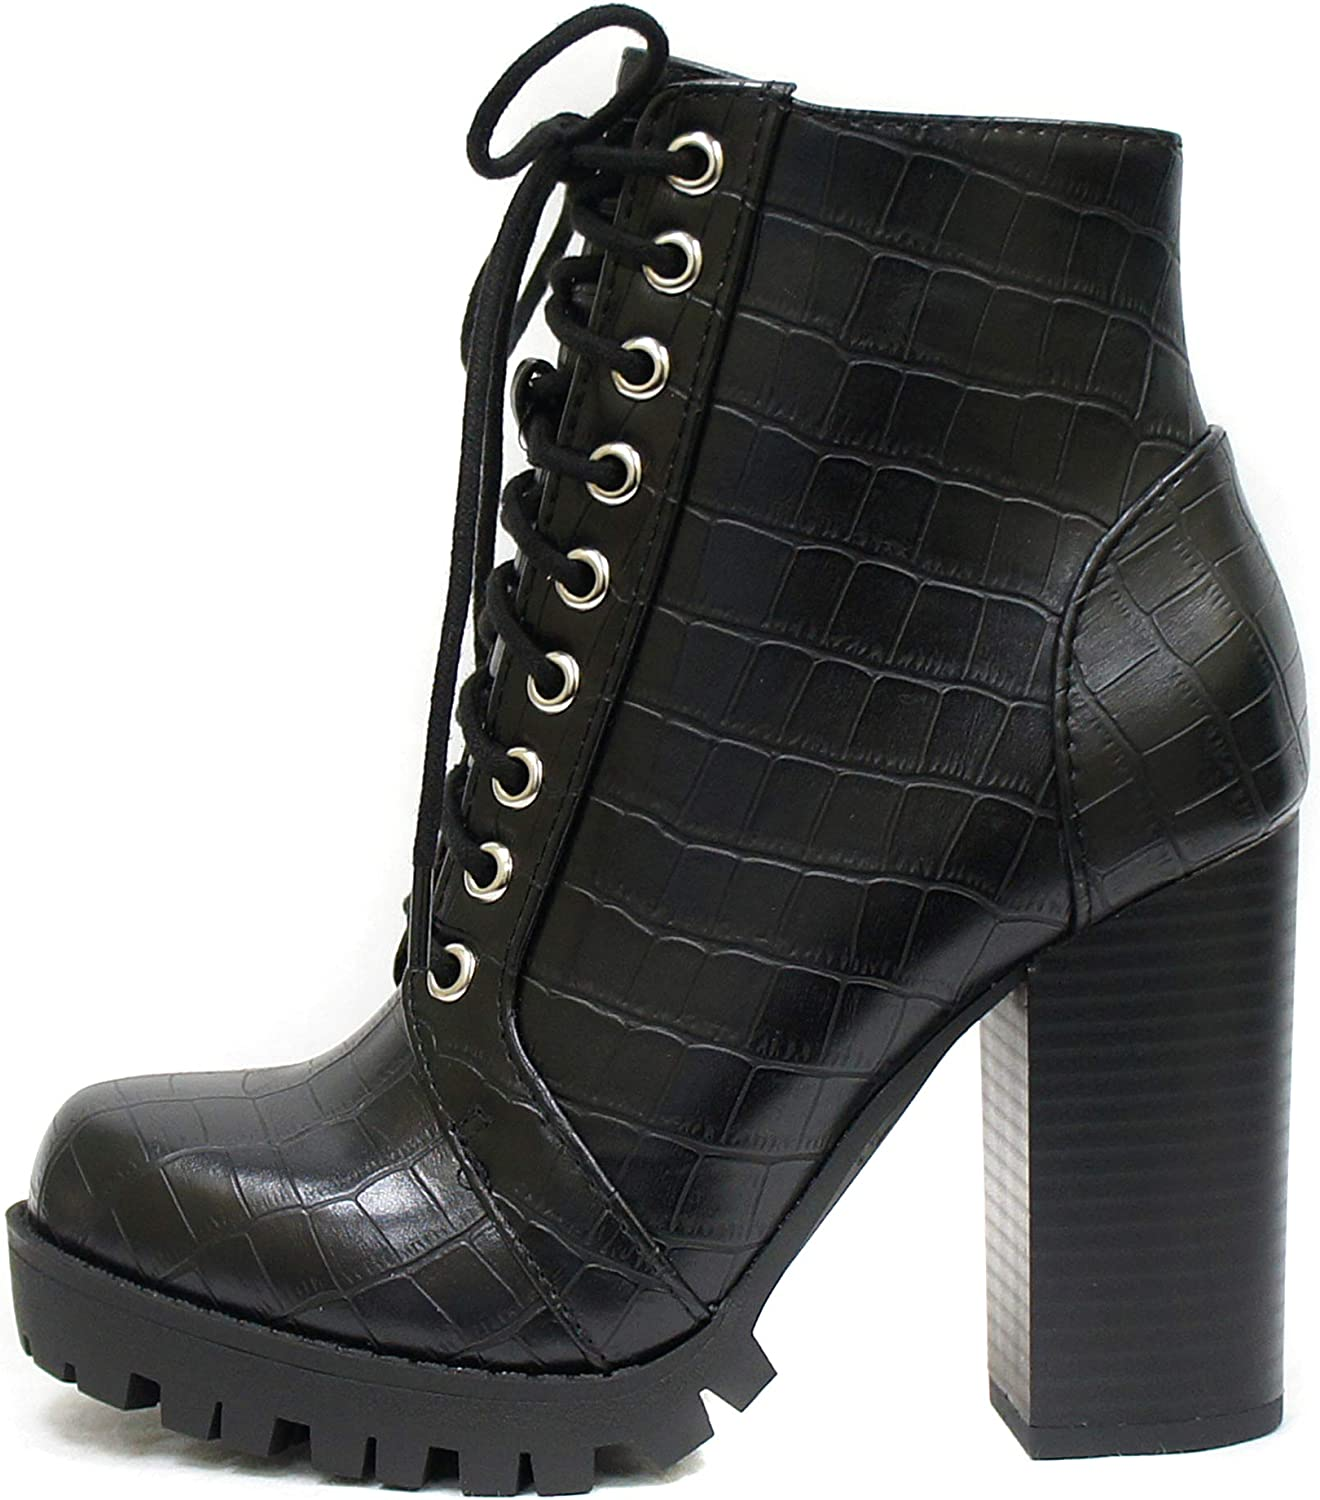 Soda Chalet – Fashion Lace up Military Inspired Ankle Boot with Stacked Heel and Side Zipper